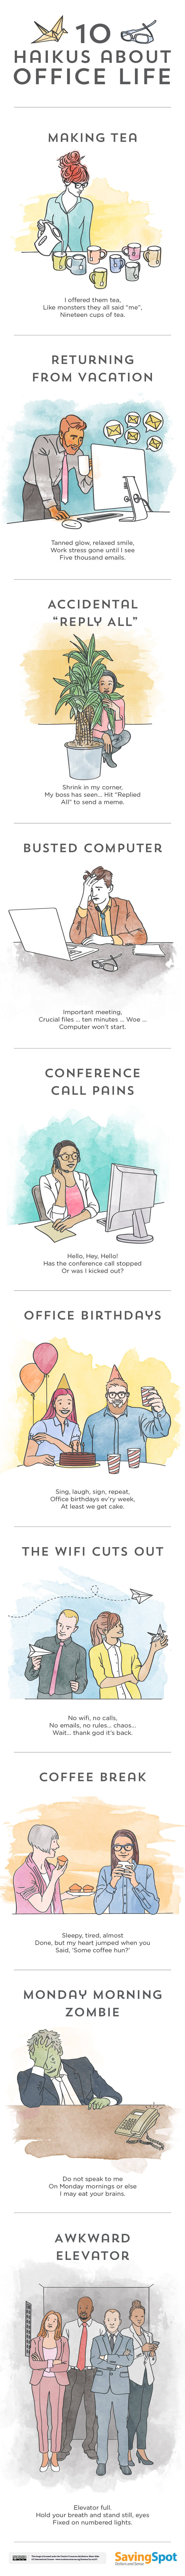 infographic-office-life-haiku